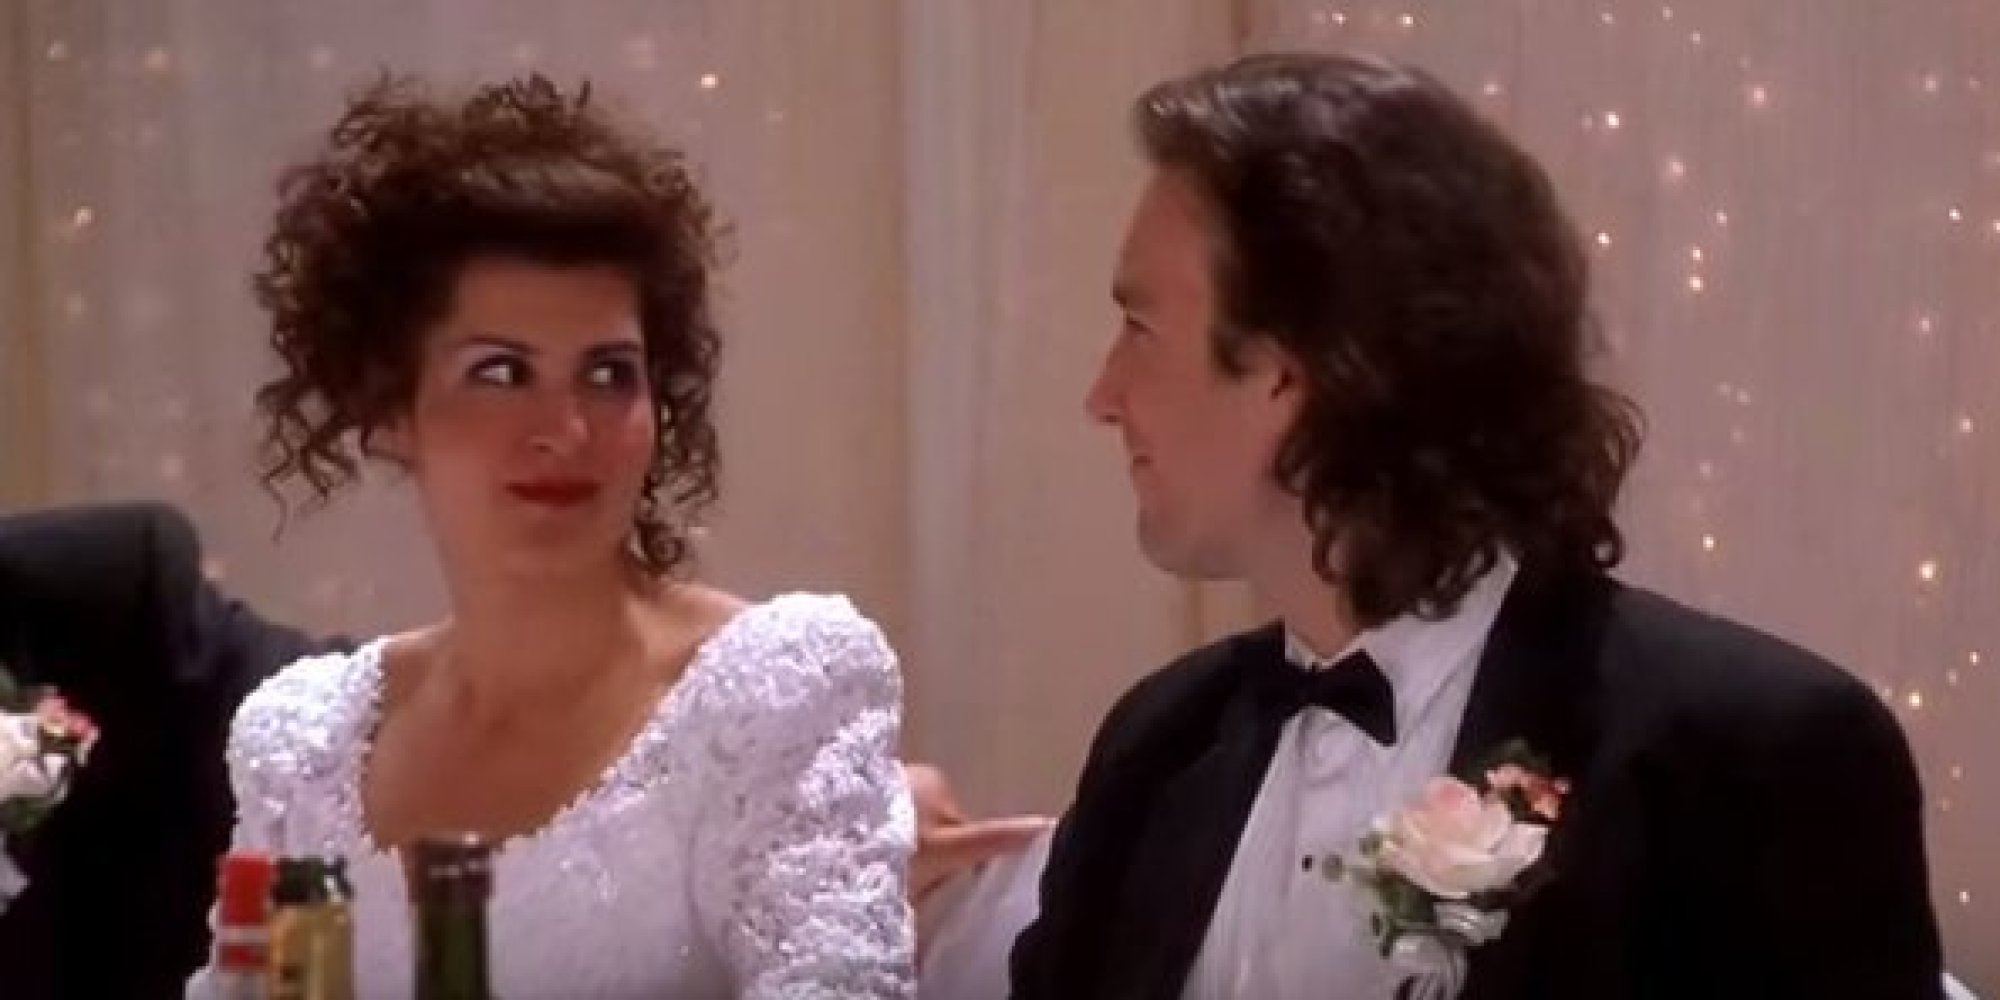 Which book was the film 'My Big Fat Greek Wedding' based on and who wrote it.?